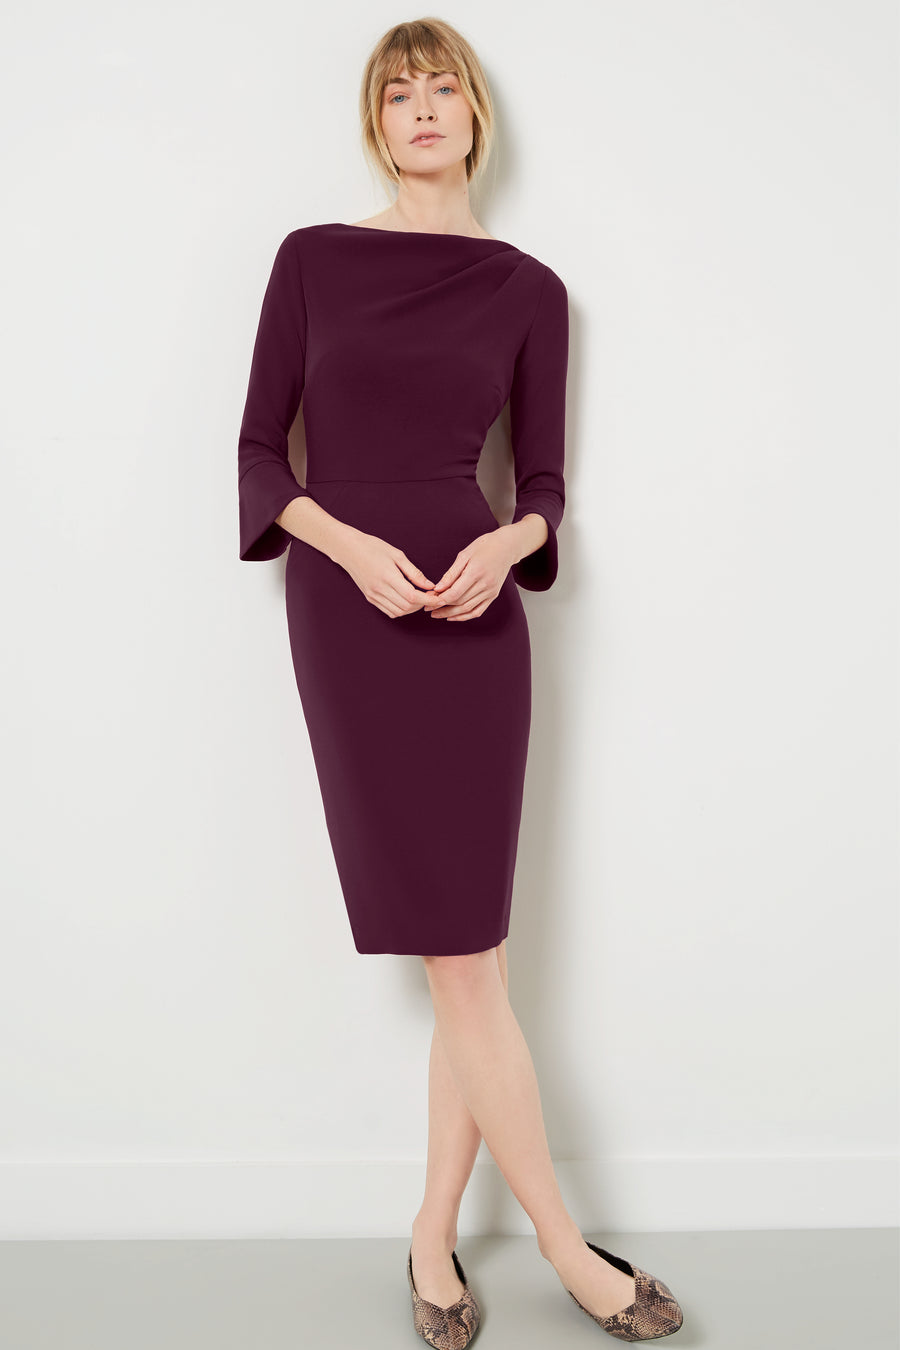 Serpentine Aubergine Dress